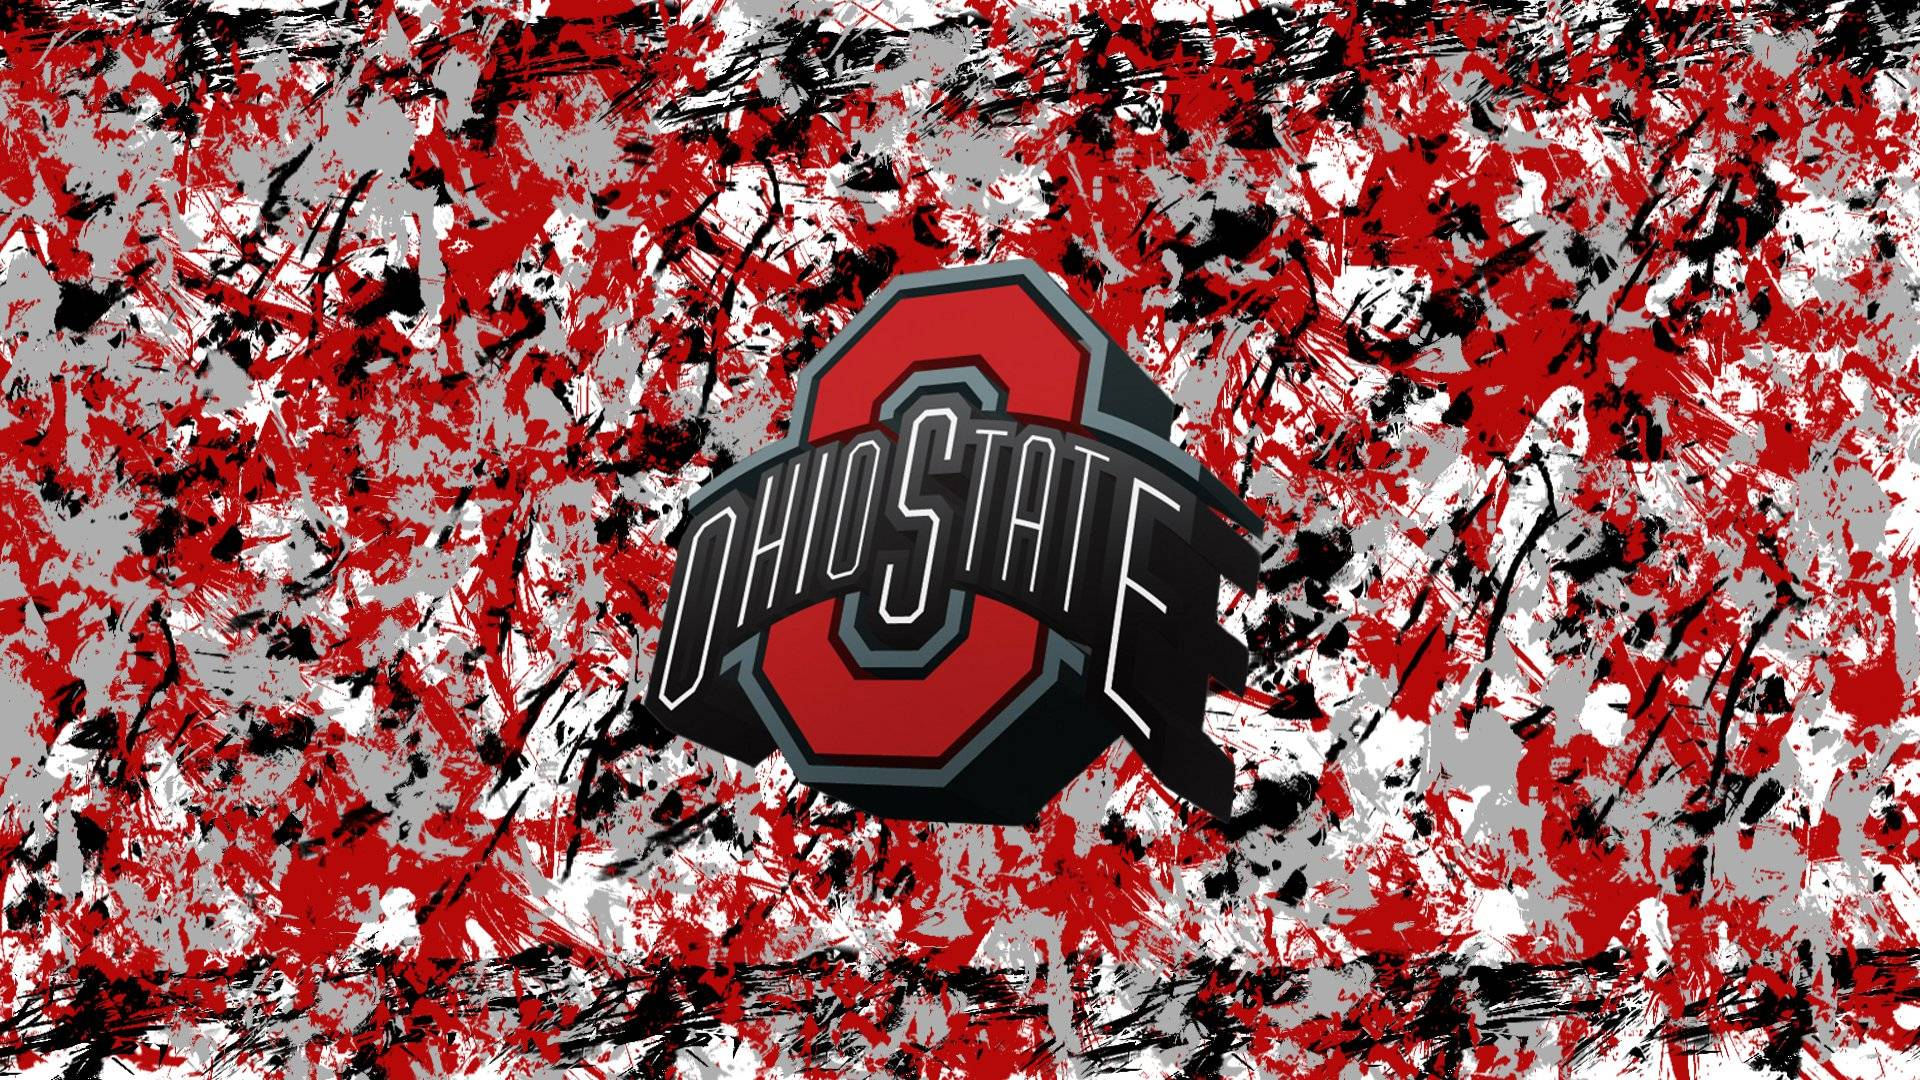 Ohio State Football Wallpaper >> Ohio State Wallpapers - Wallpaper Cave